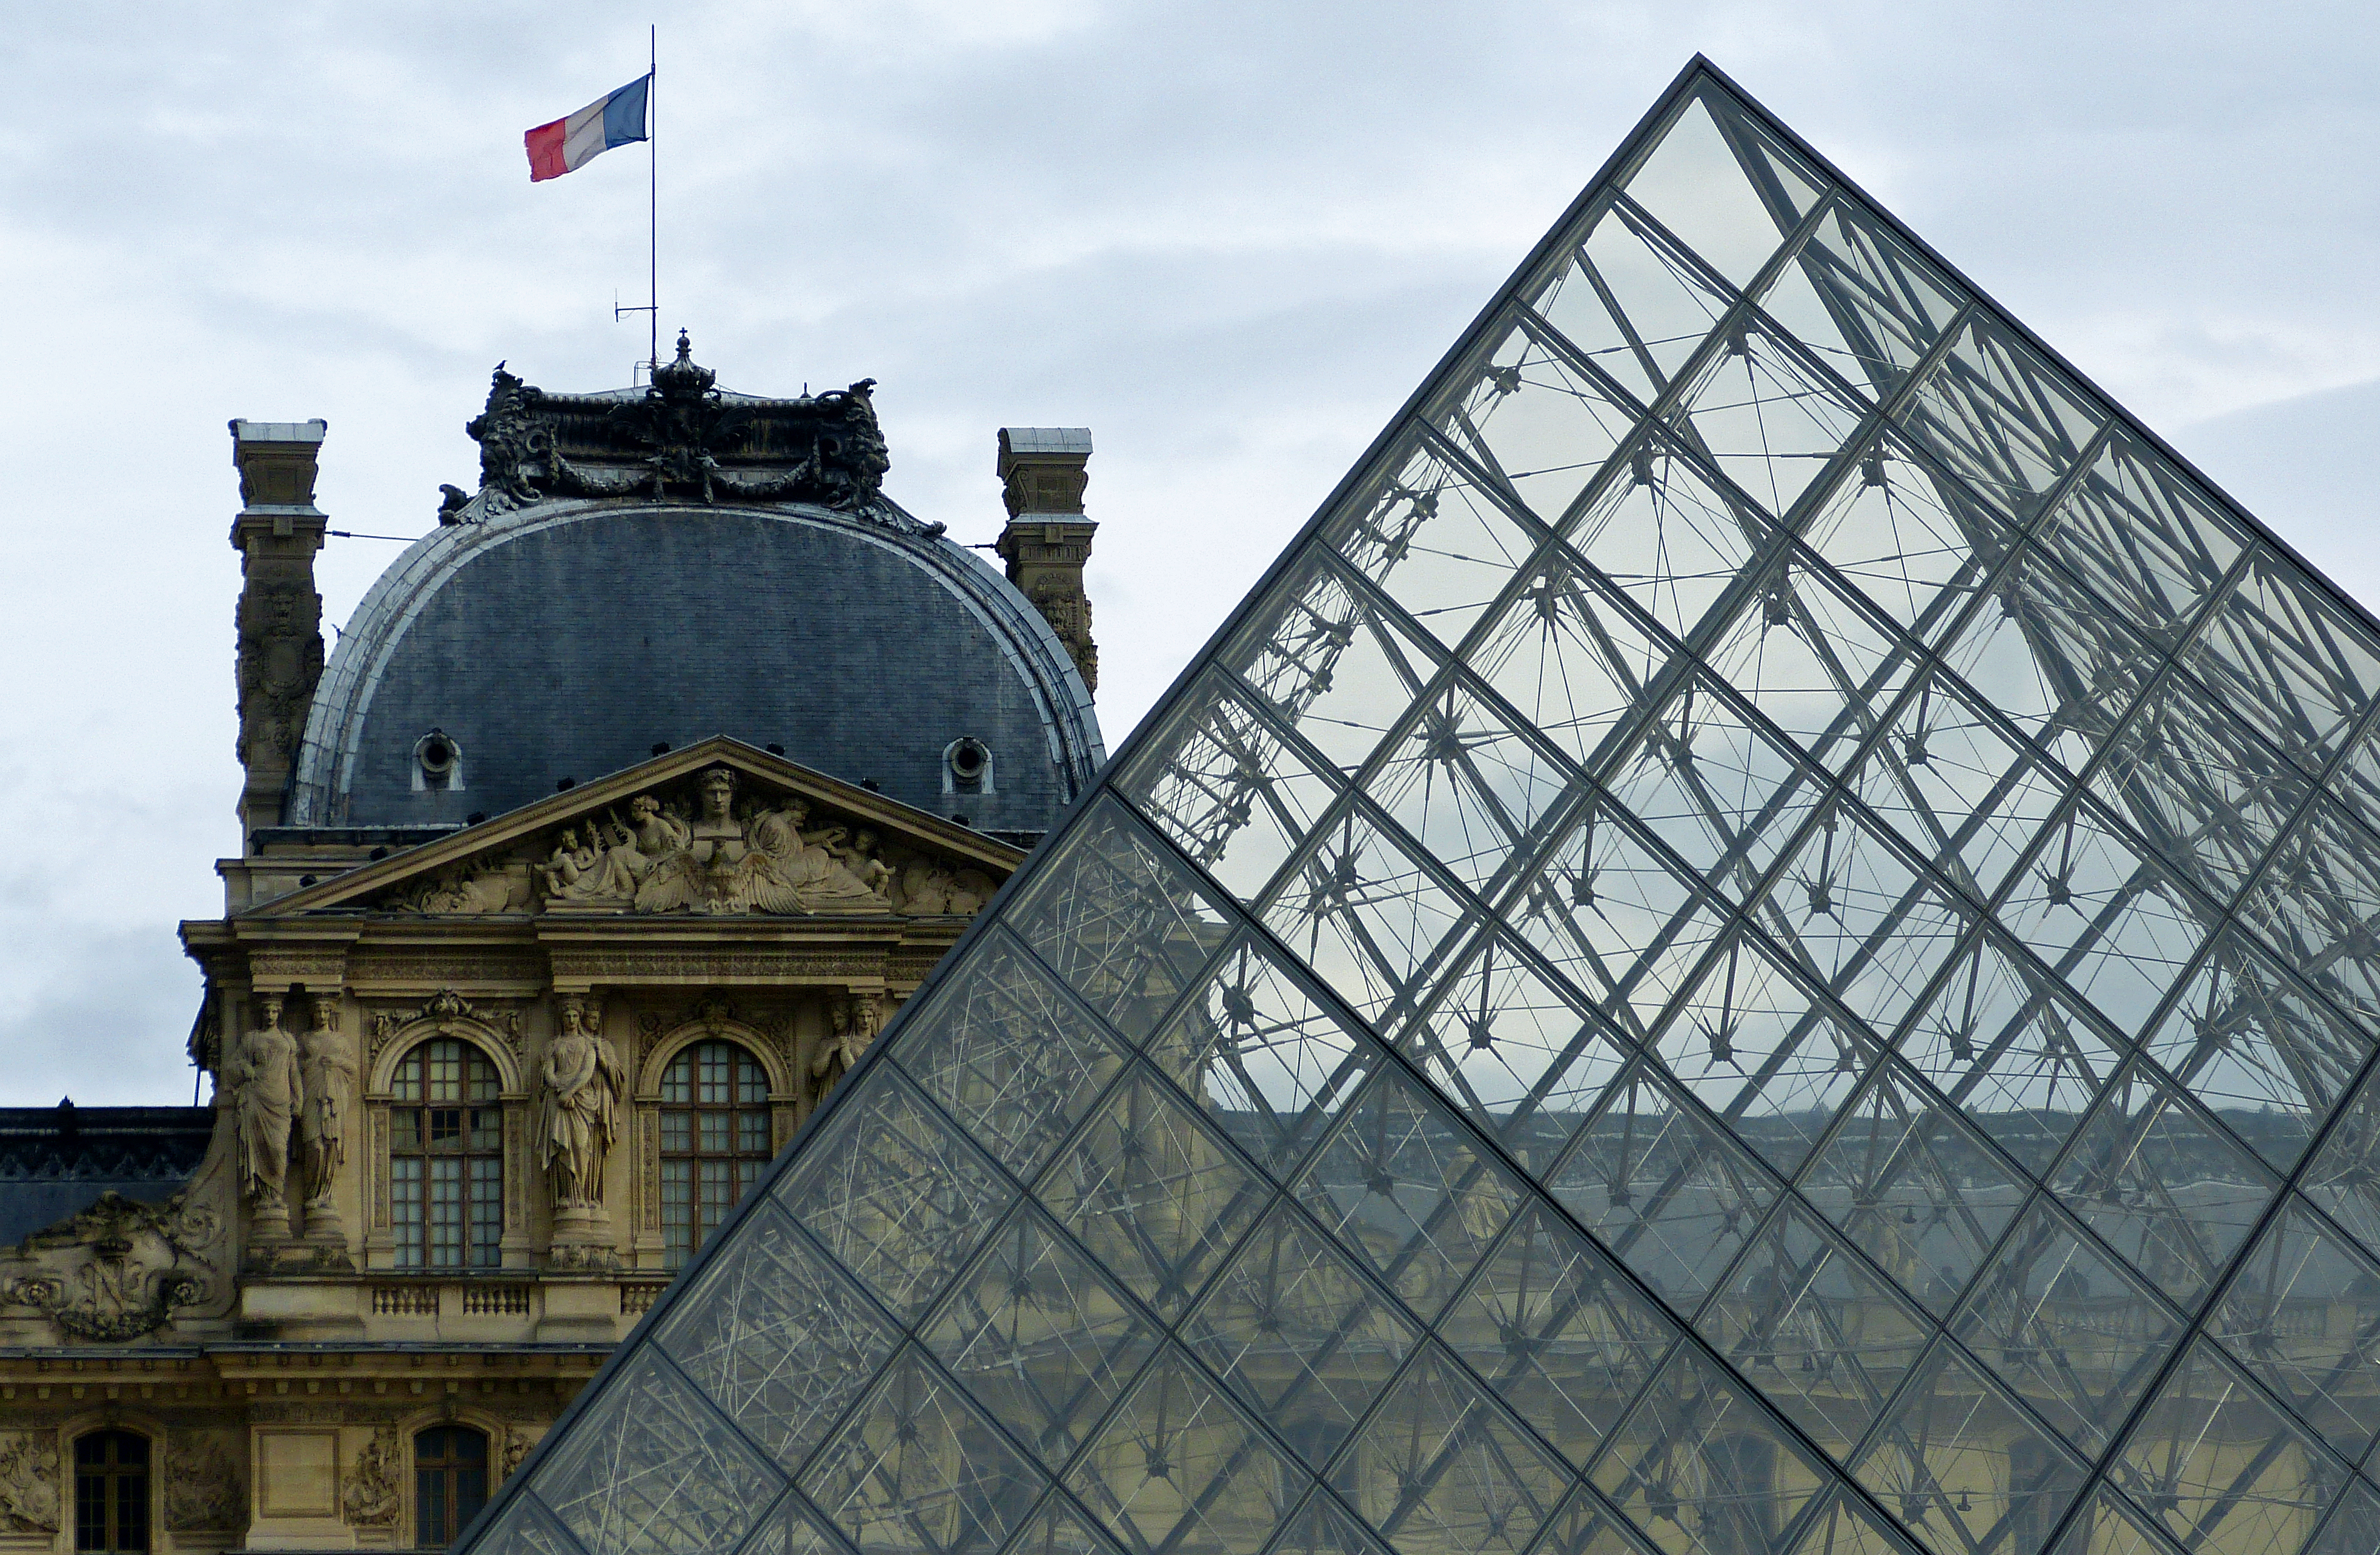 Experience the Louvre Museum, housing some of the world's classics